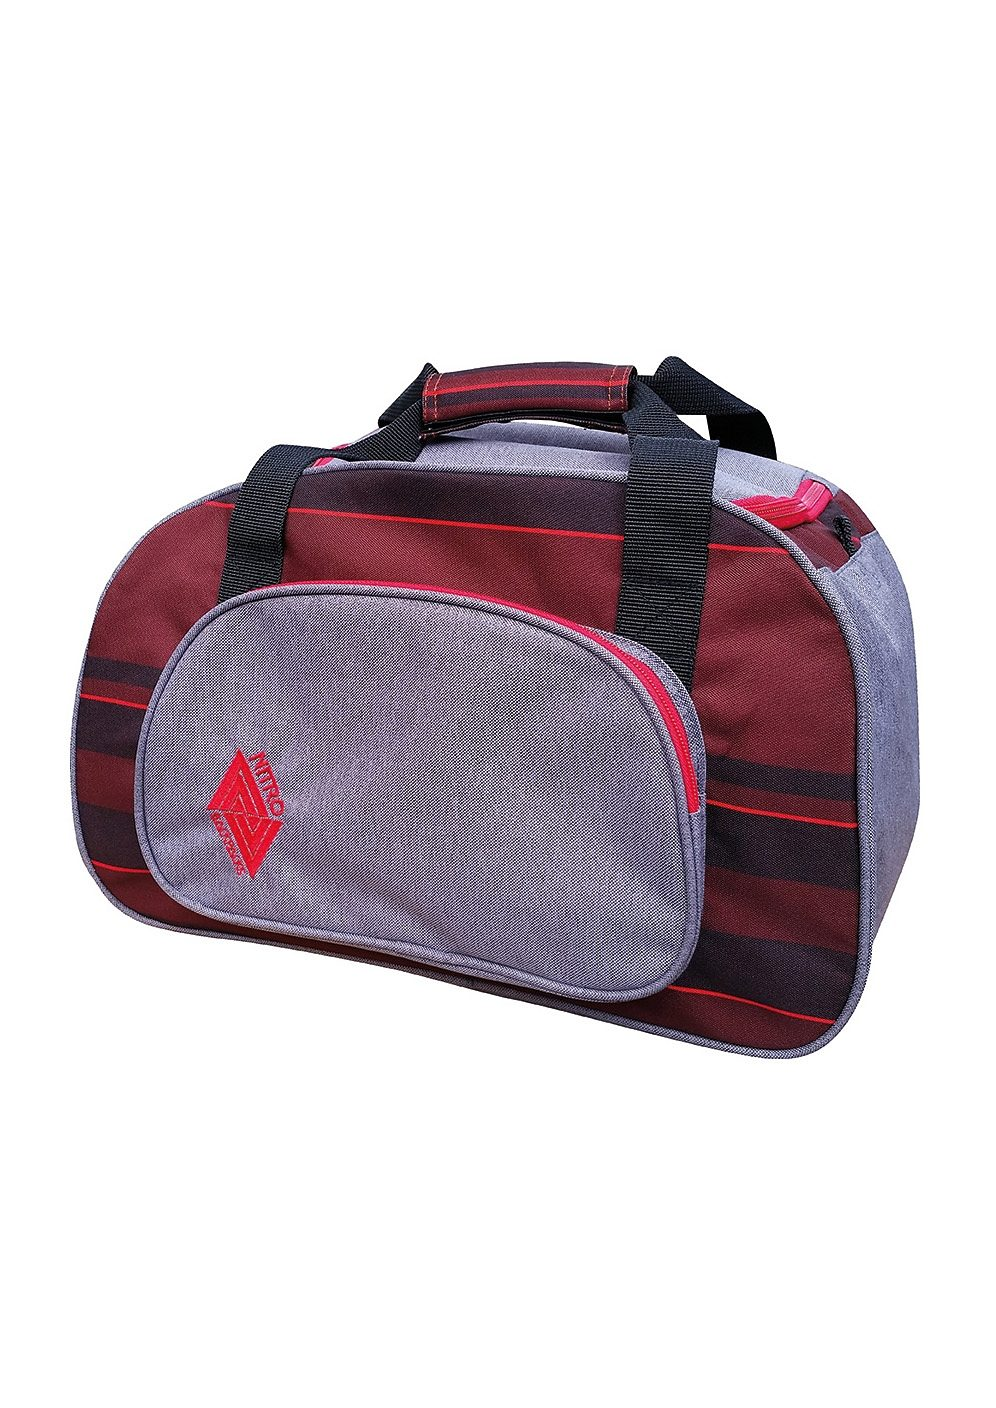 Nitro Reisetasche, »Duffle Bag XS - Red Stripes«